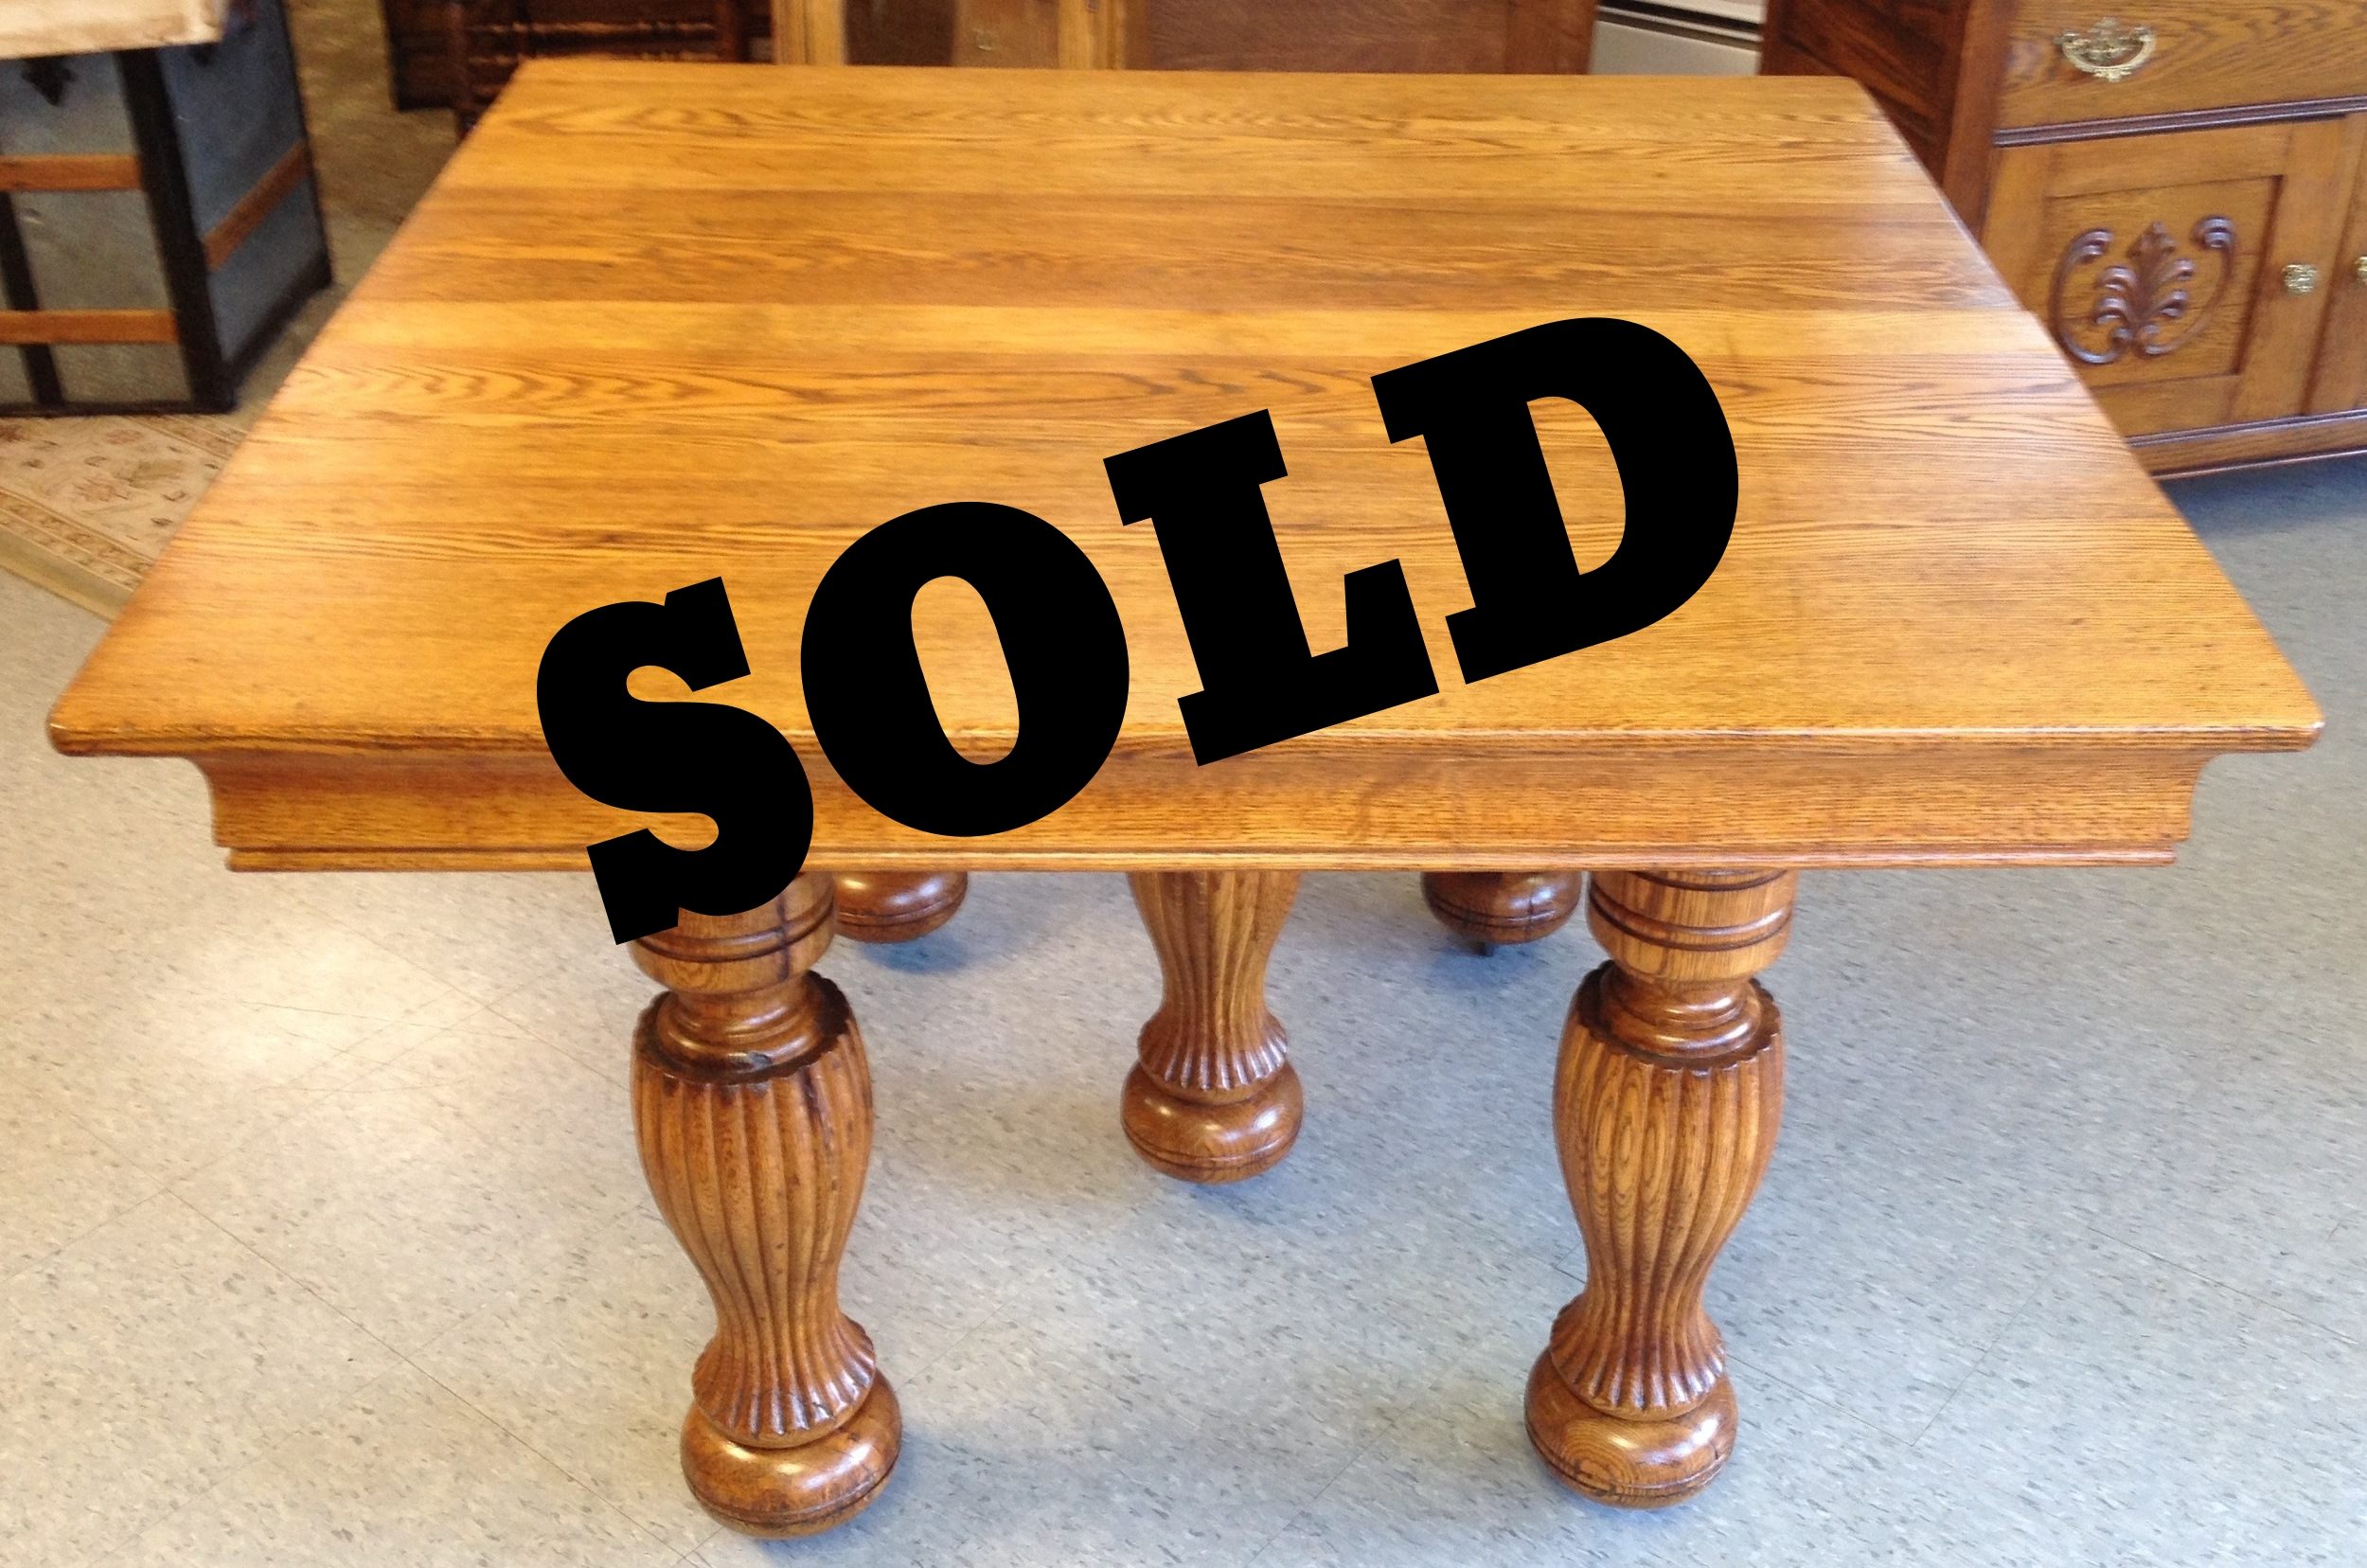 44 In. Square Table